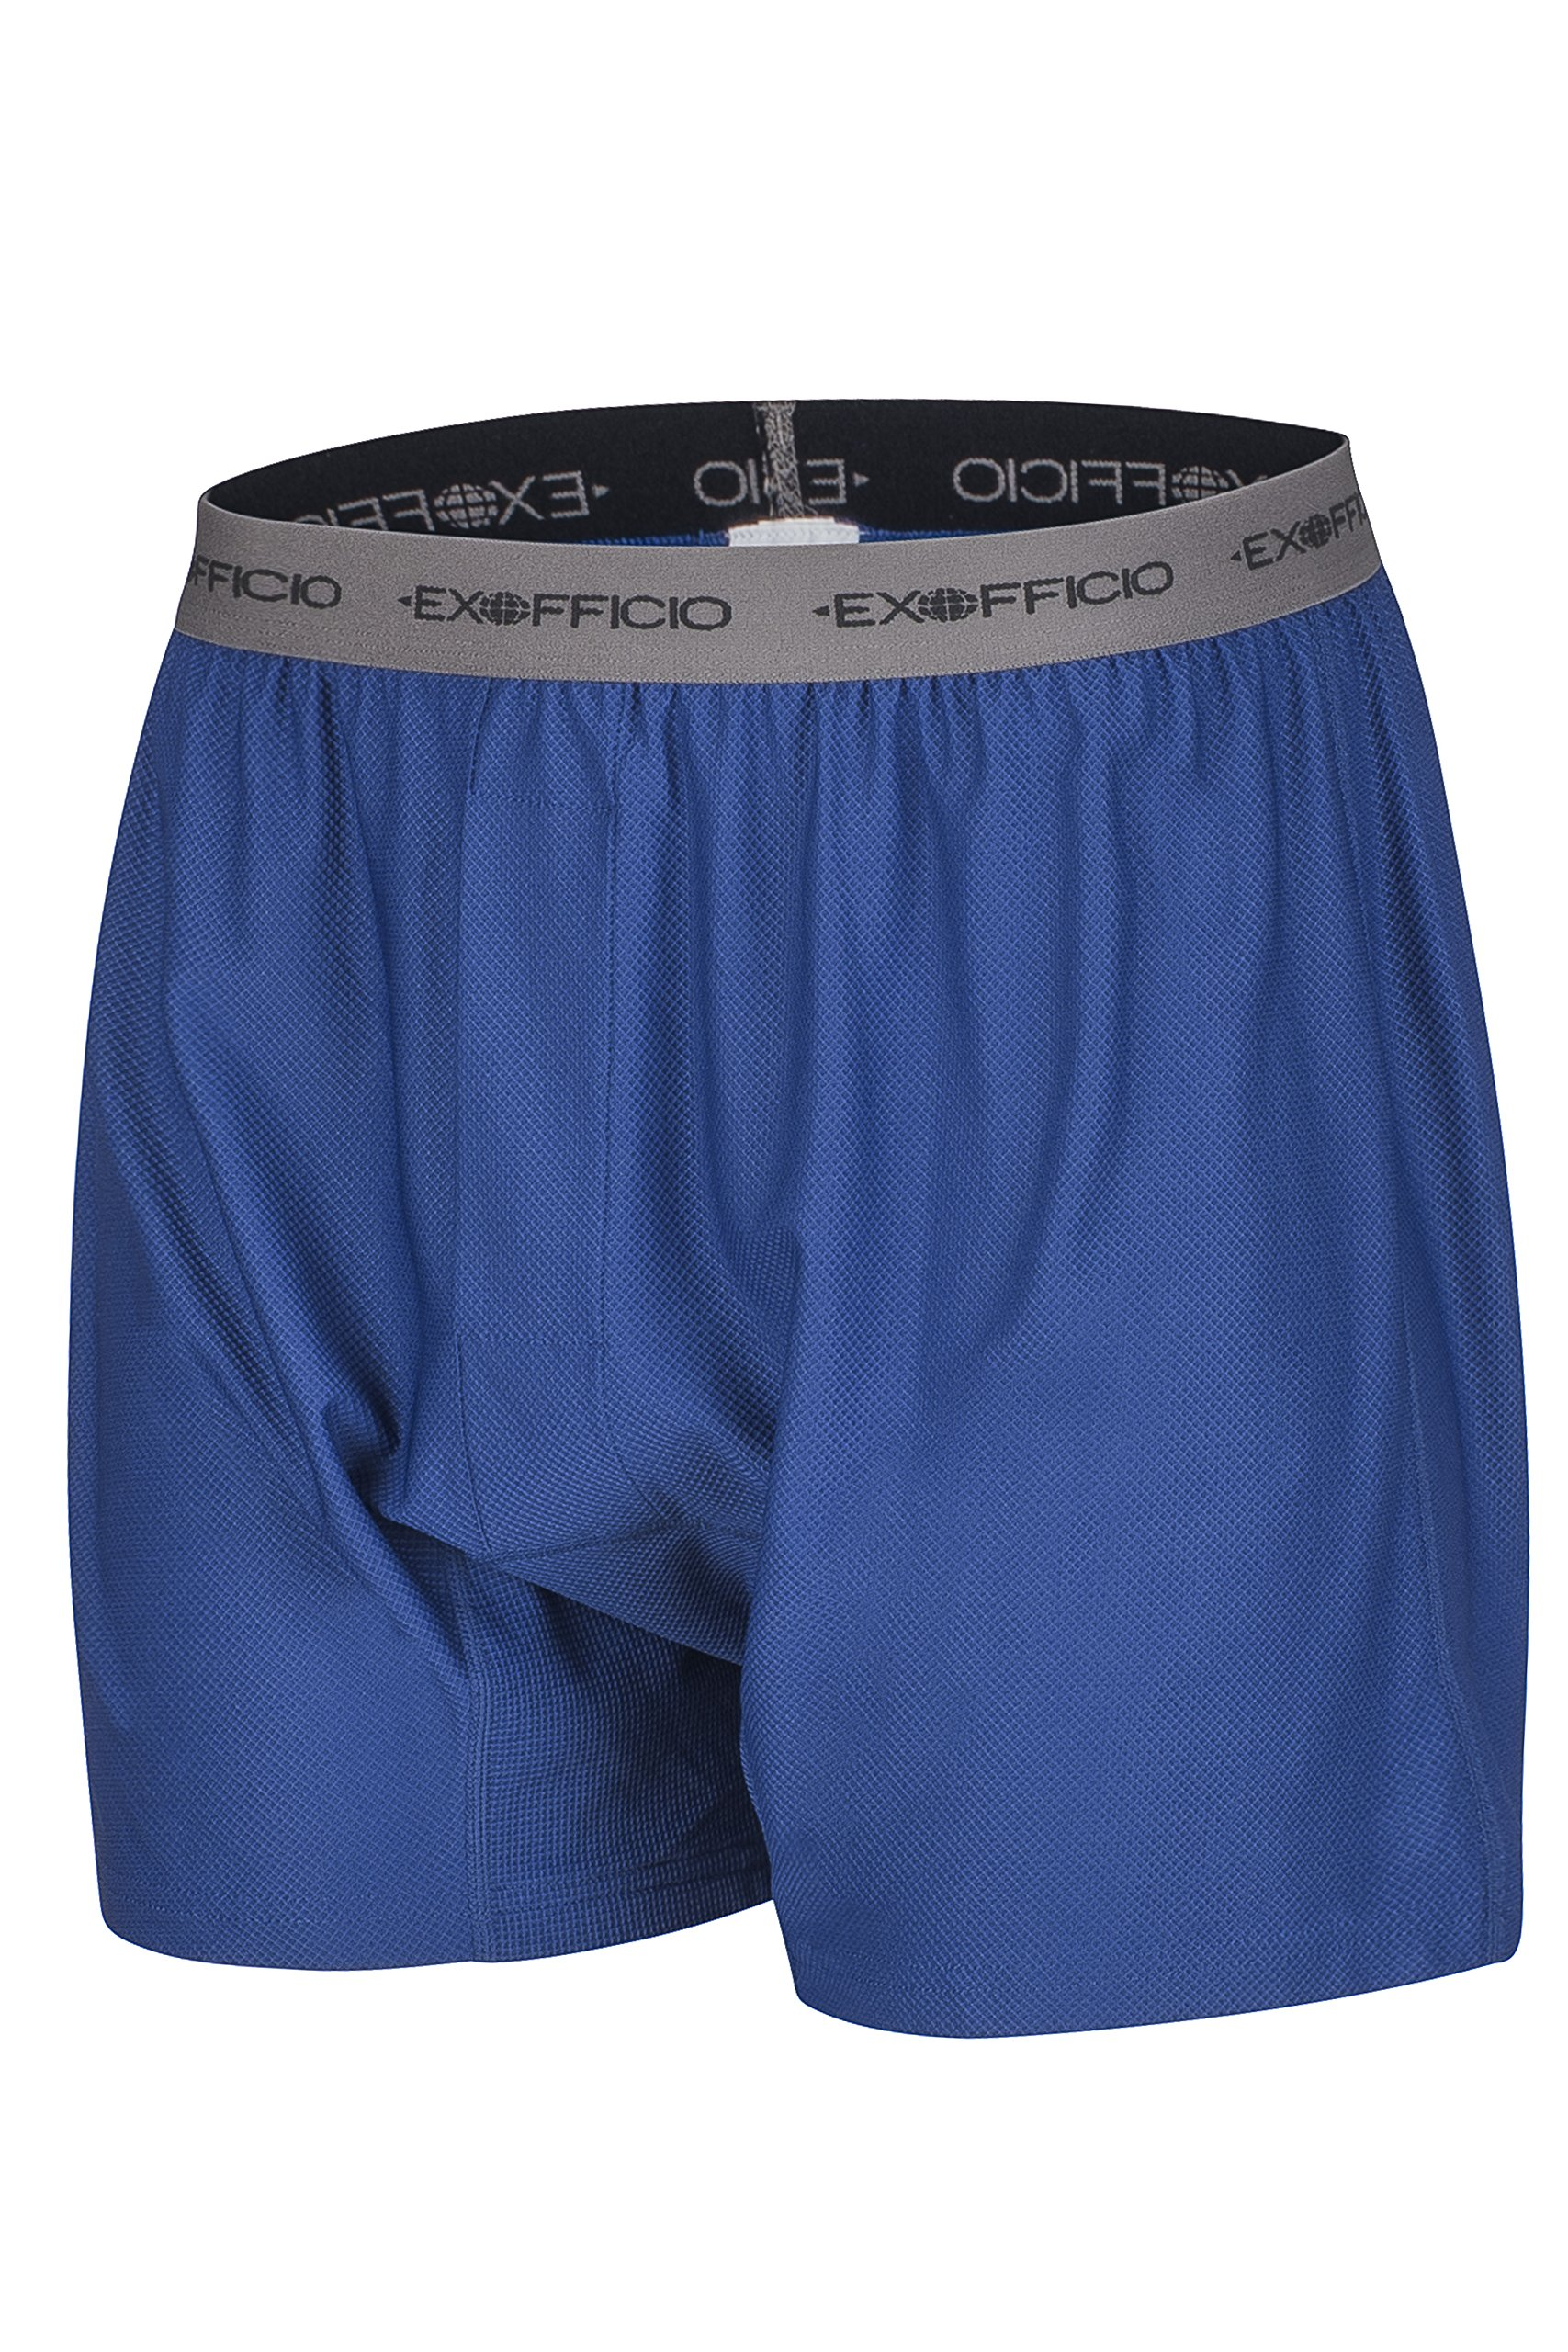 ExOfficio Men's Give-N-Go Boxer,Admiral/Grey,Medium